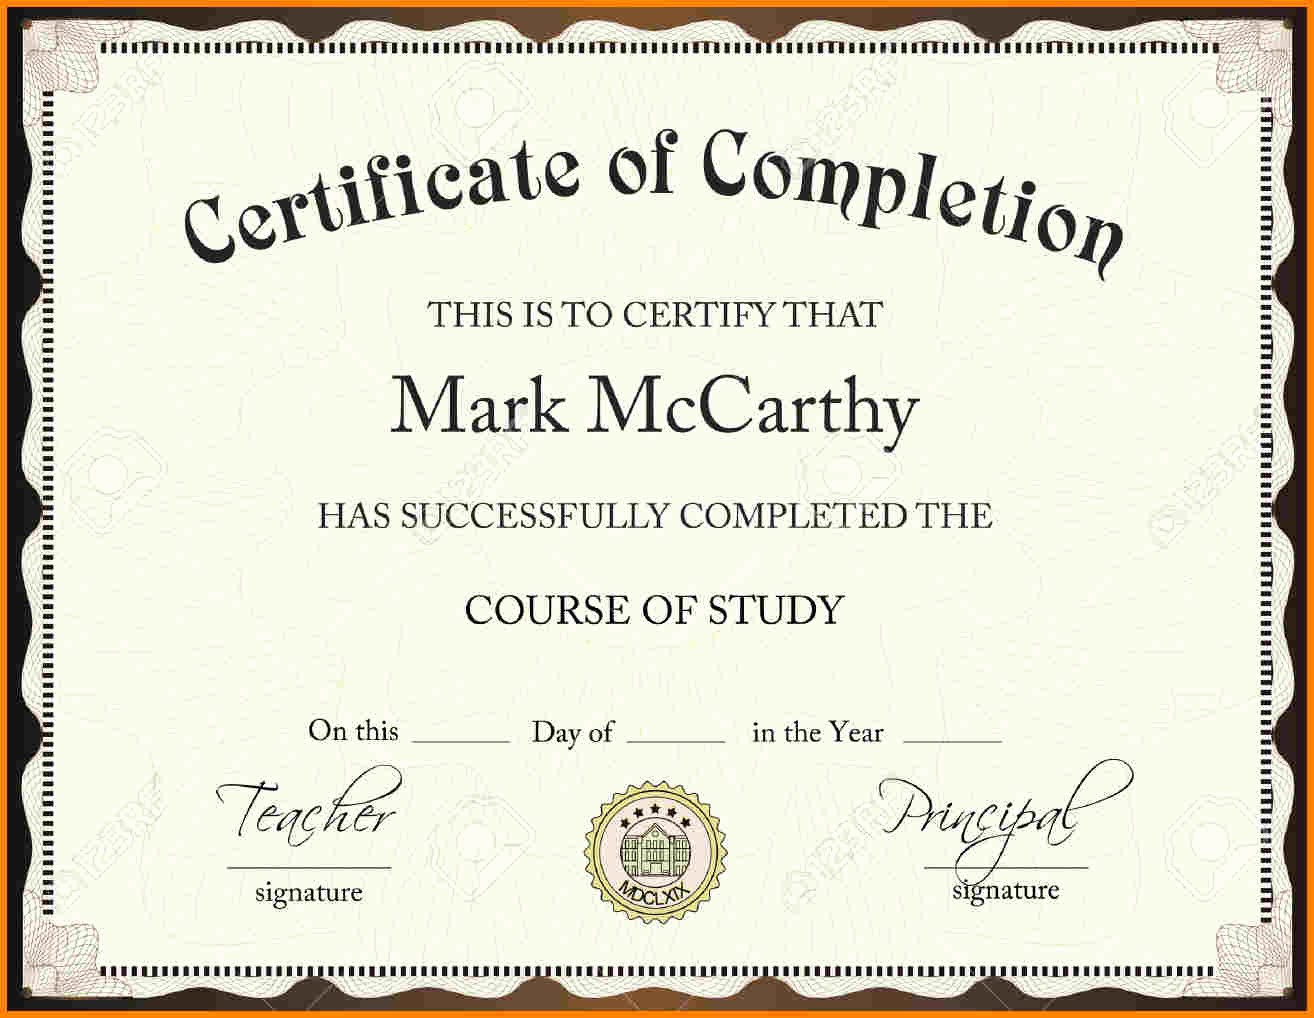 Training Certificates Templates Free Download Beautiful Certificate Pletion Template Free Download